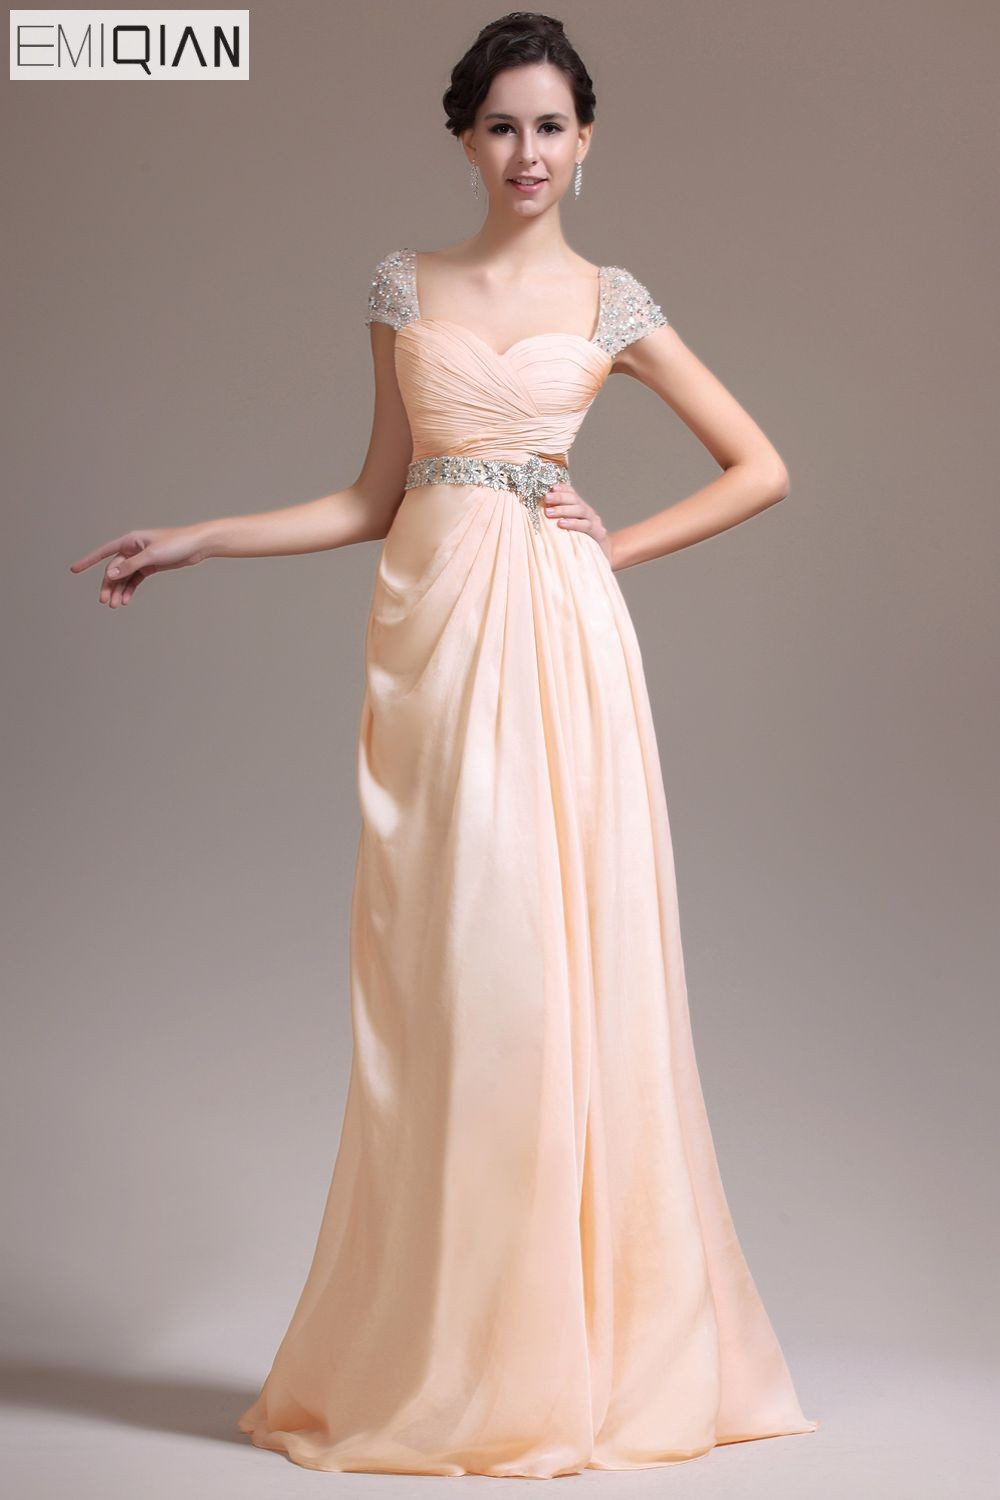 Freeshipping New Gorgeous Cap Sleeves A-line Sweetheart Neckline Floor-length Evening Dresses